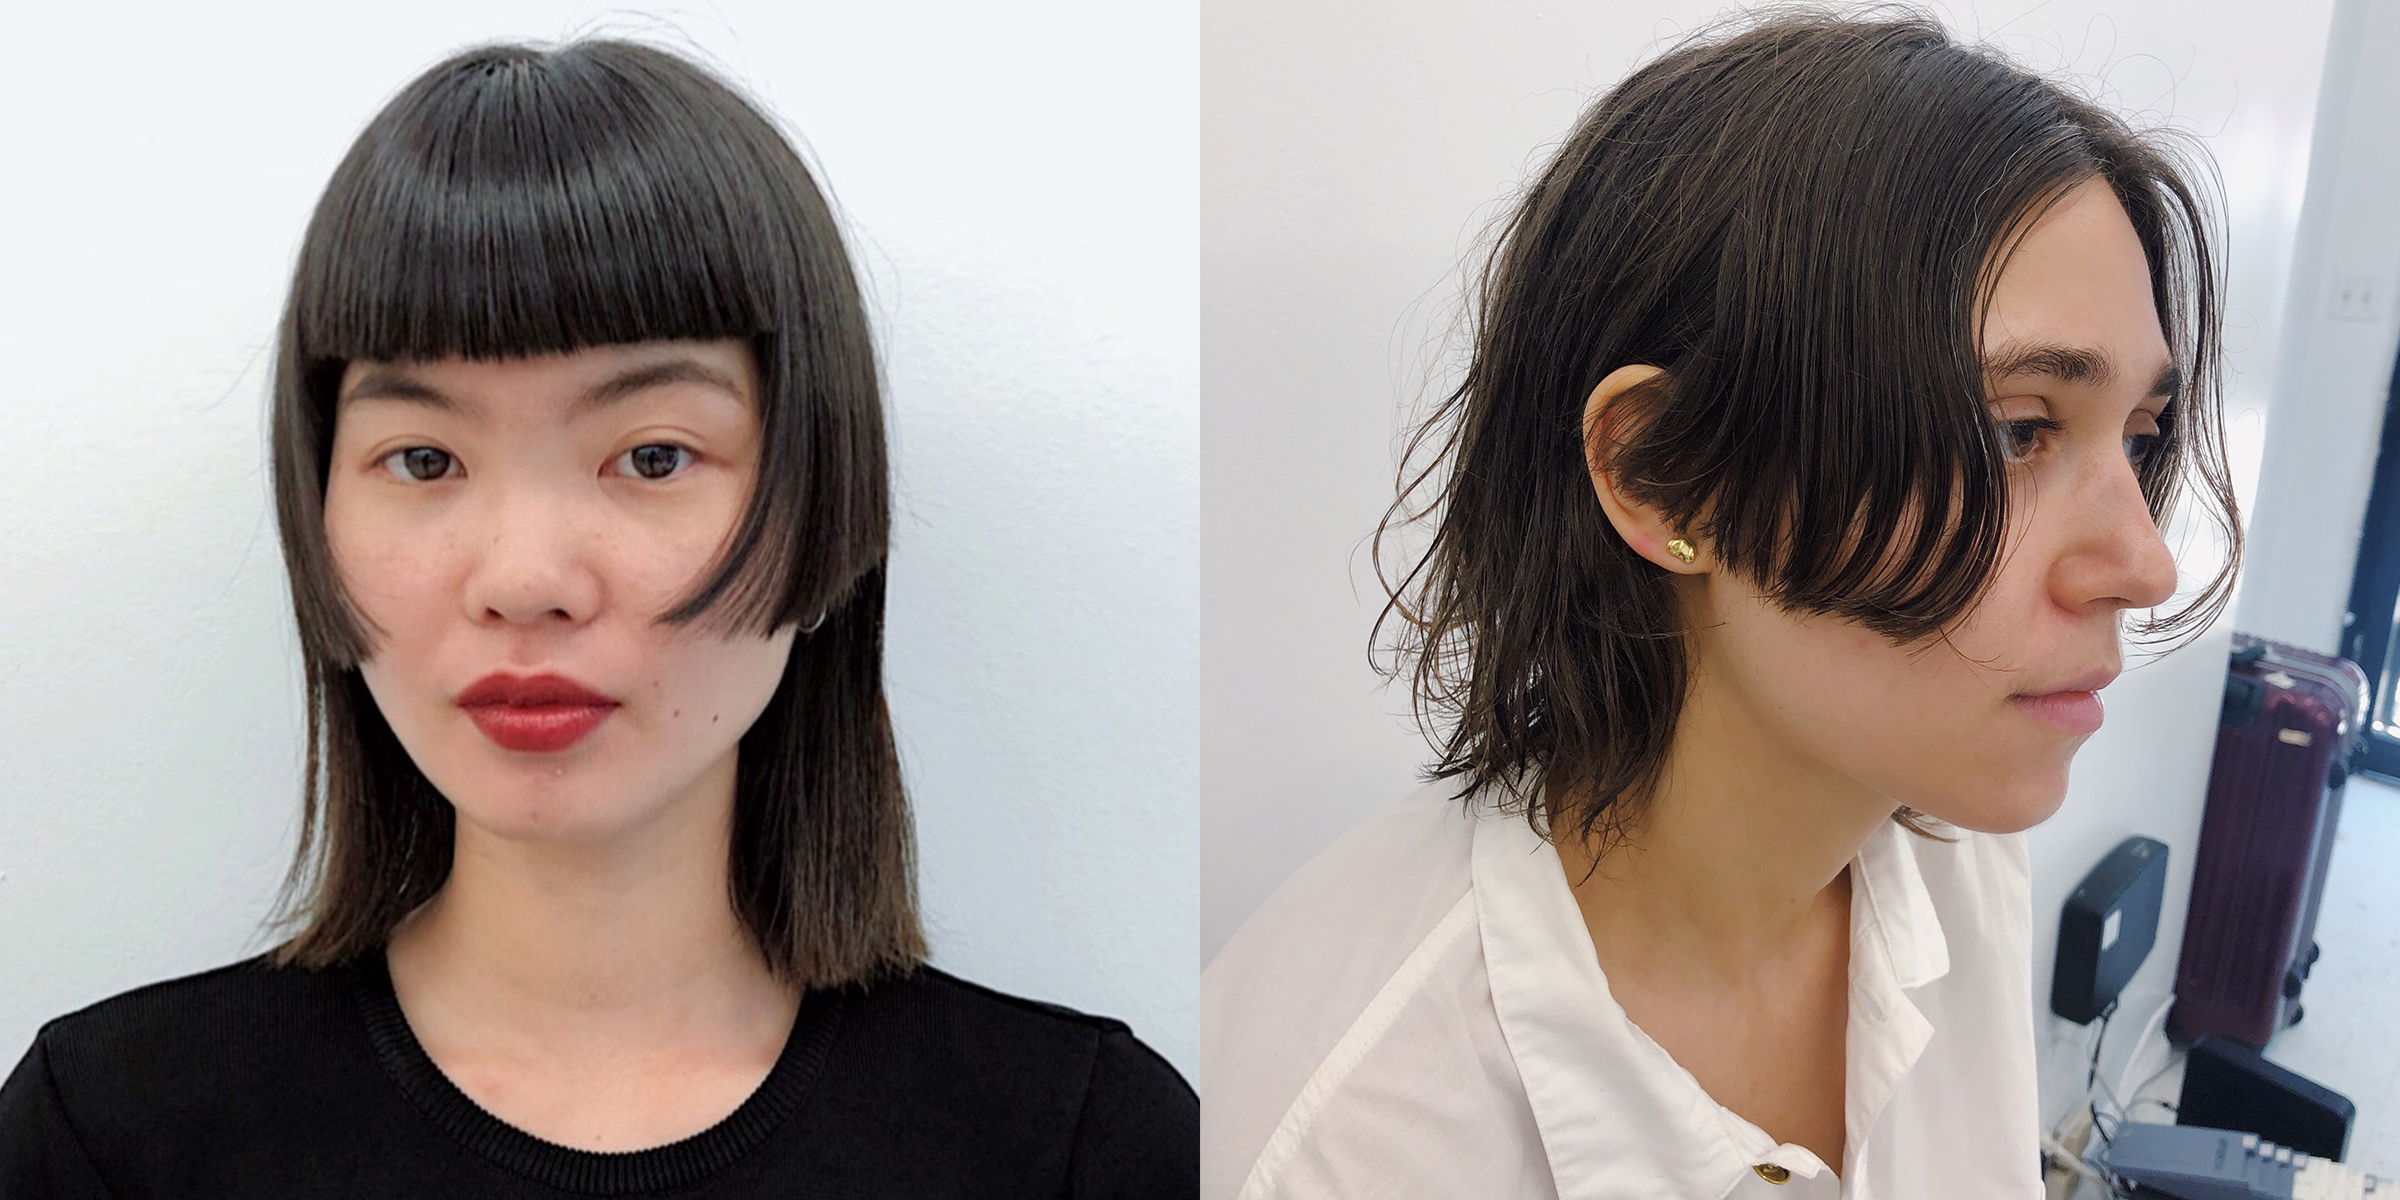 The Mullet Bangs Trend Is Inspired By Your Worst Childhood Haircut